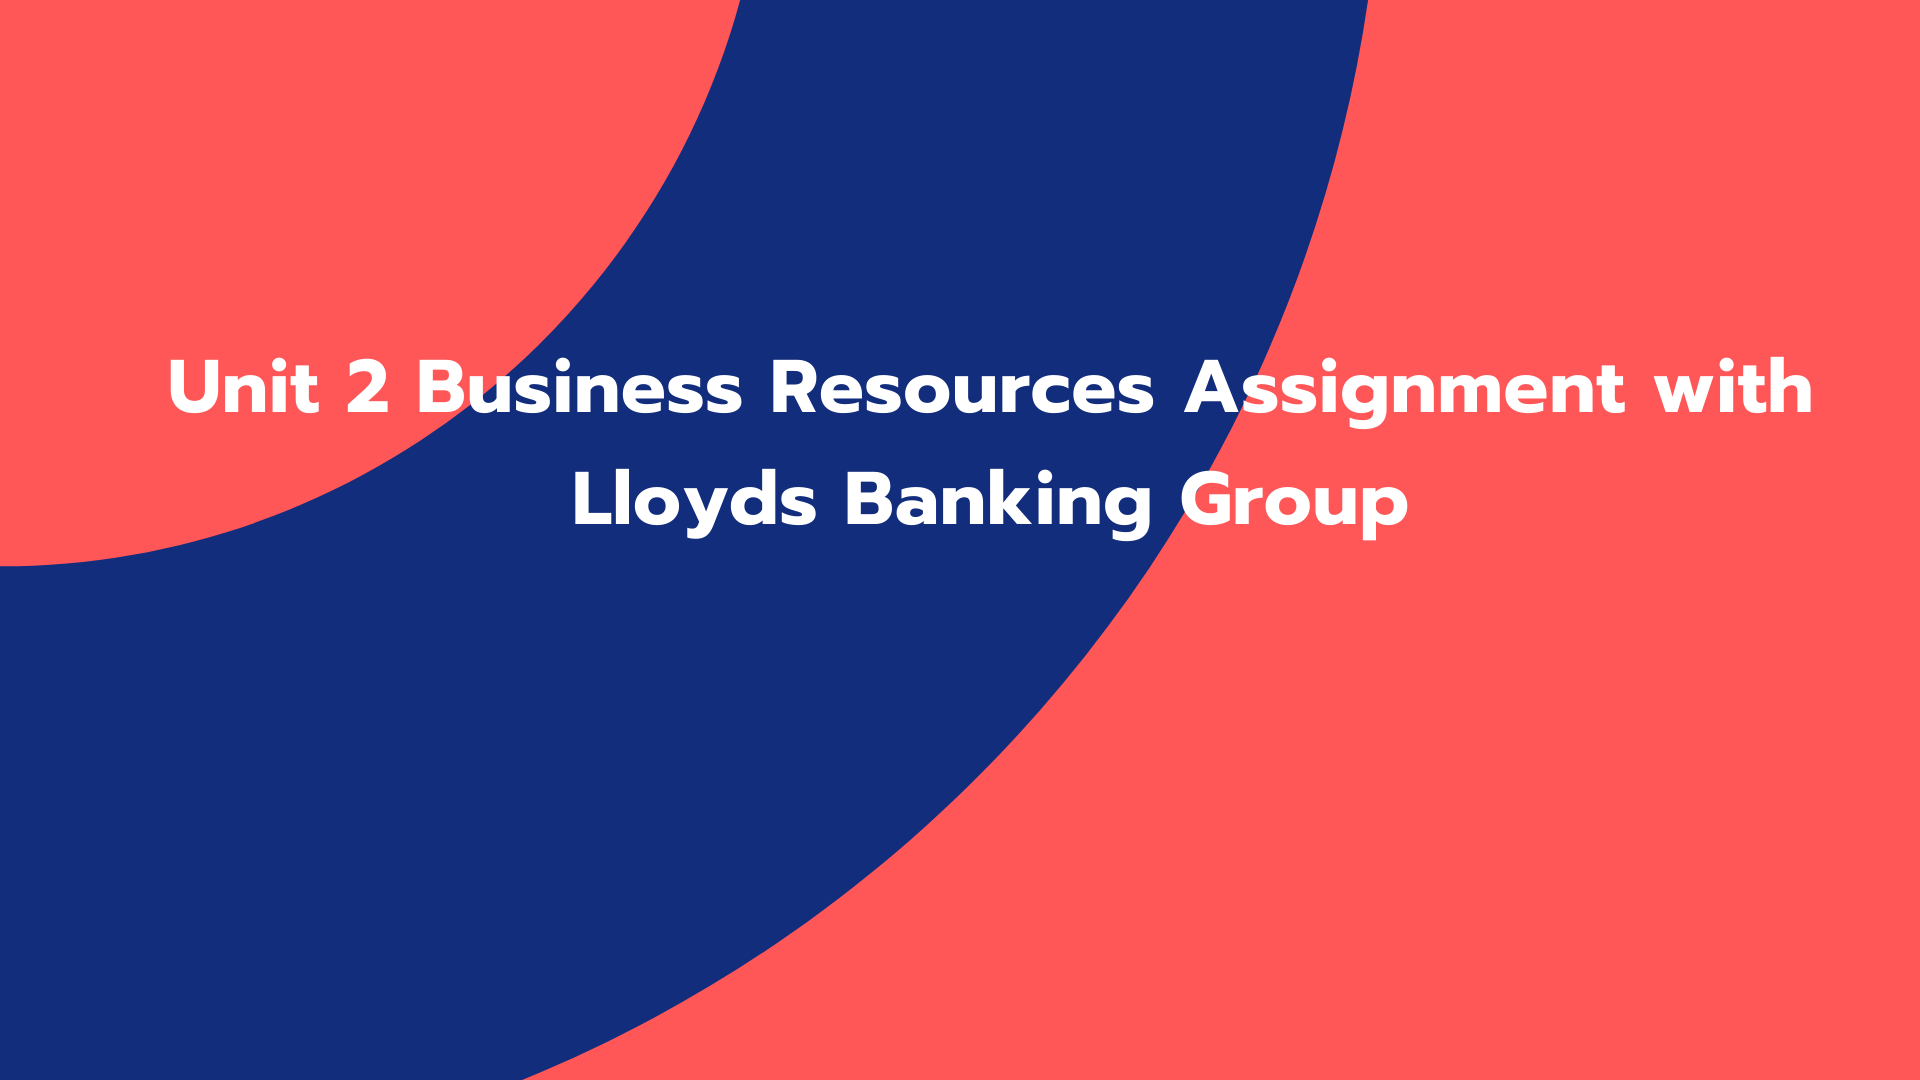 Unit 2 Business Resources Assignment with Lloyds Banking Group